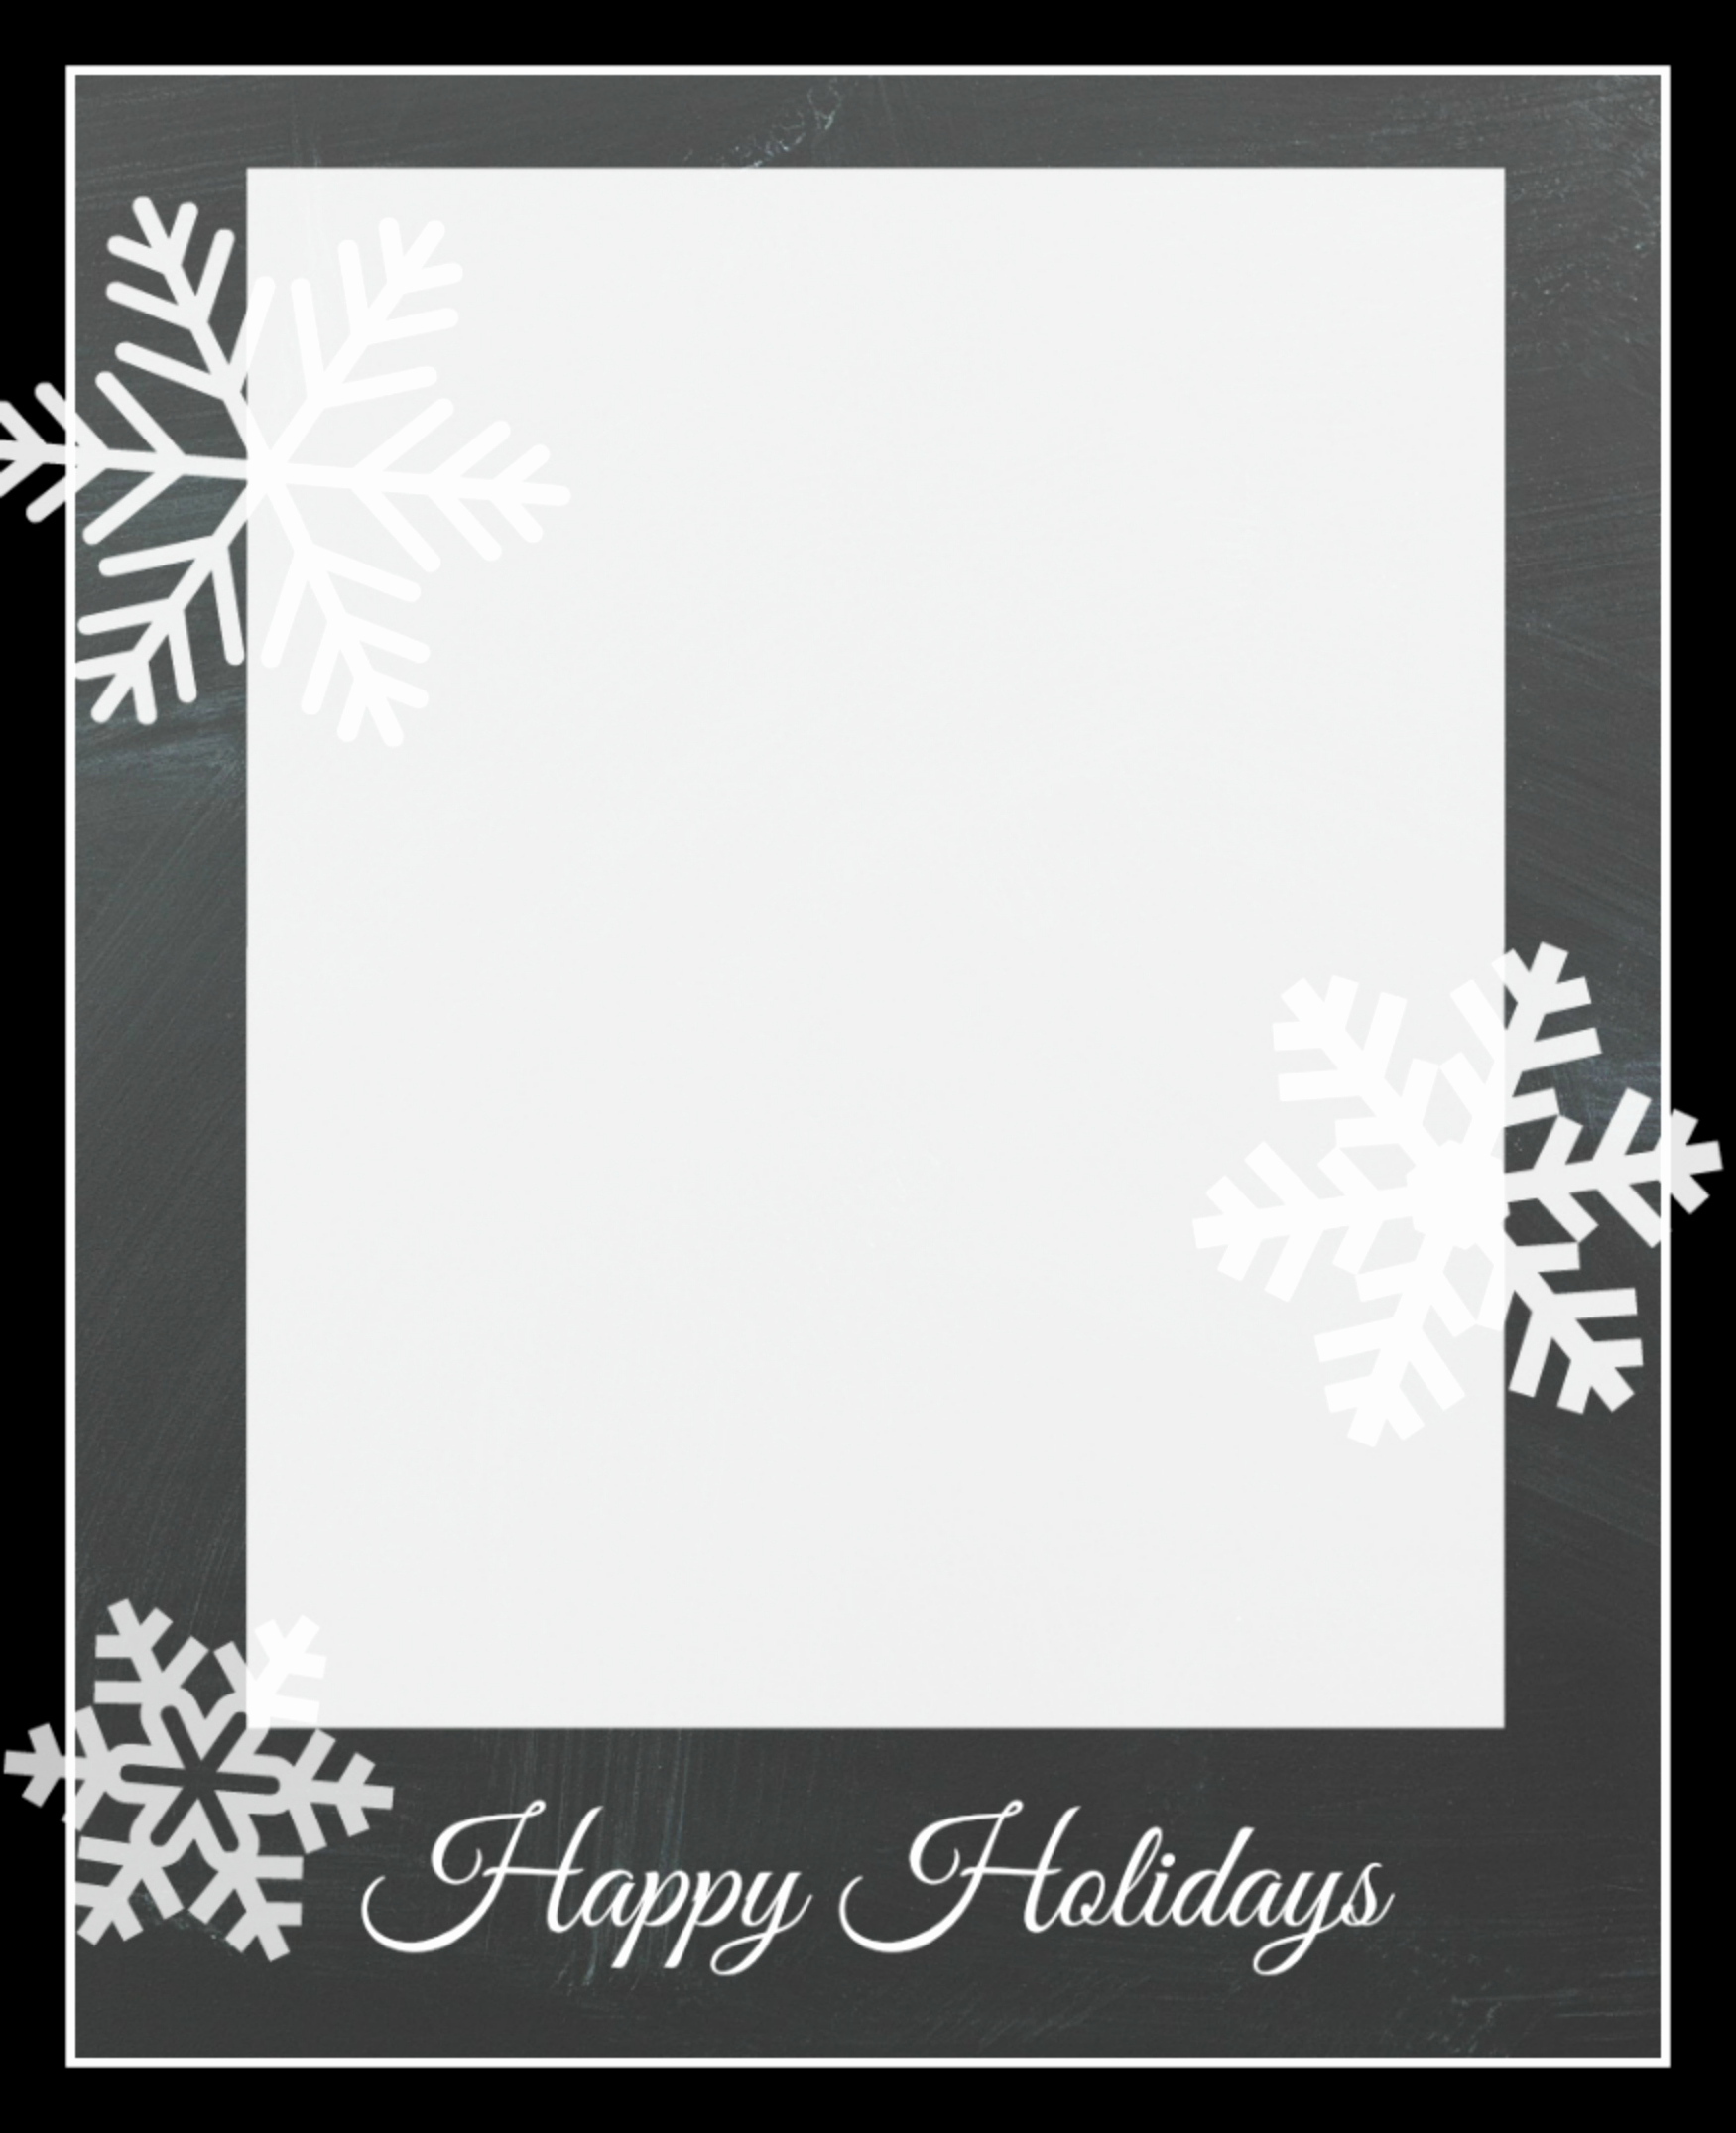 Free Photo Christmas Card Templates Inspirational Free Christmas Card Templates Crazy Little Projects